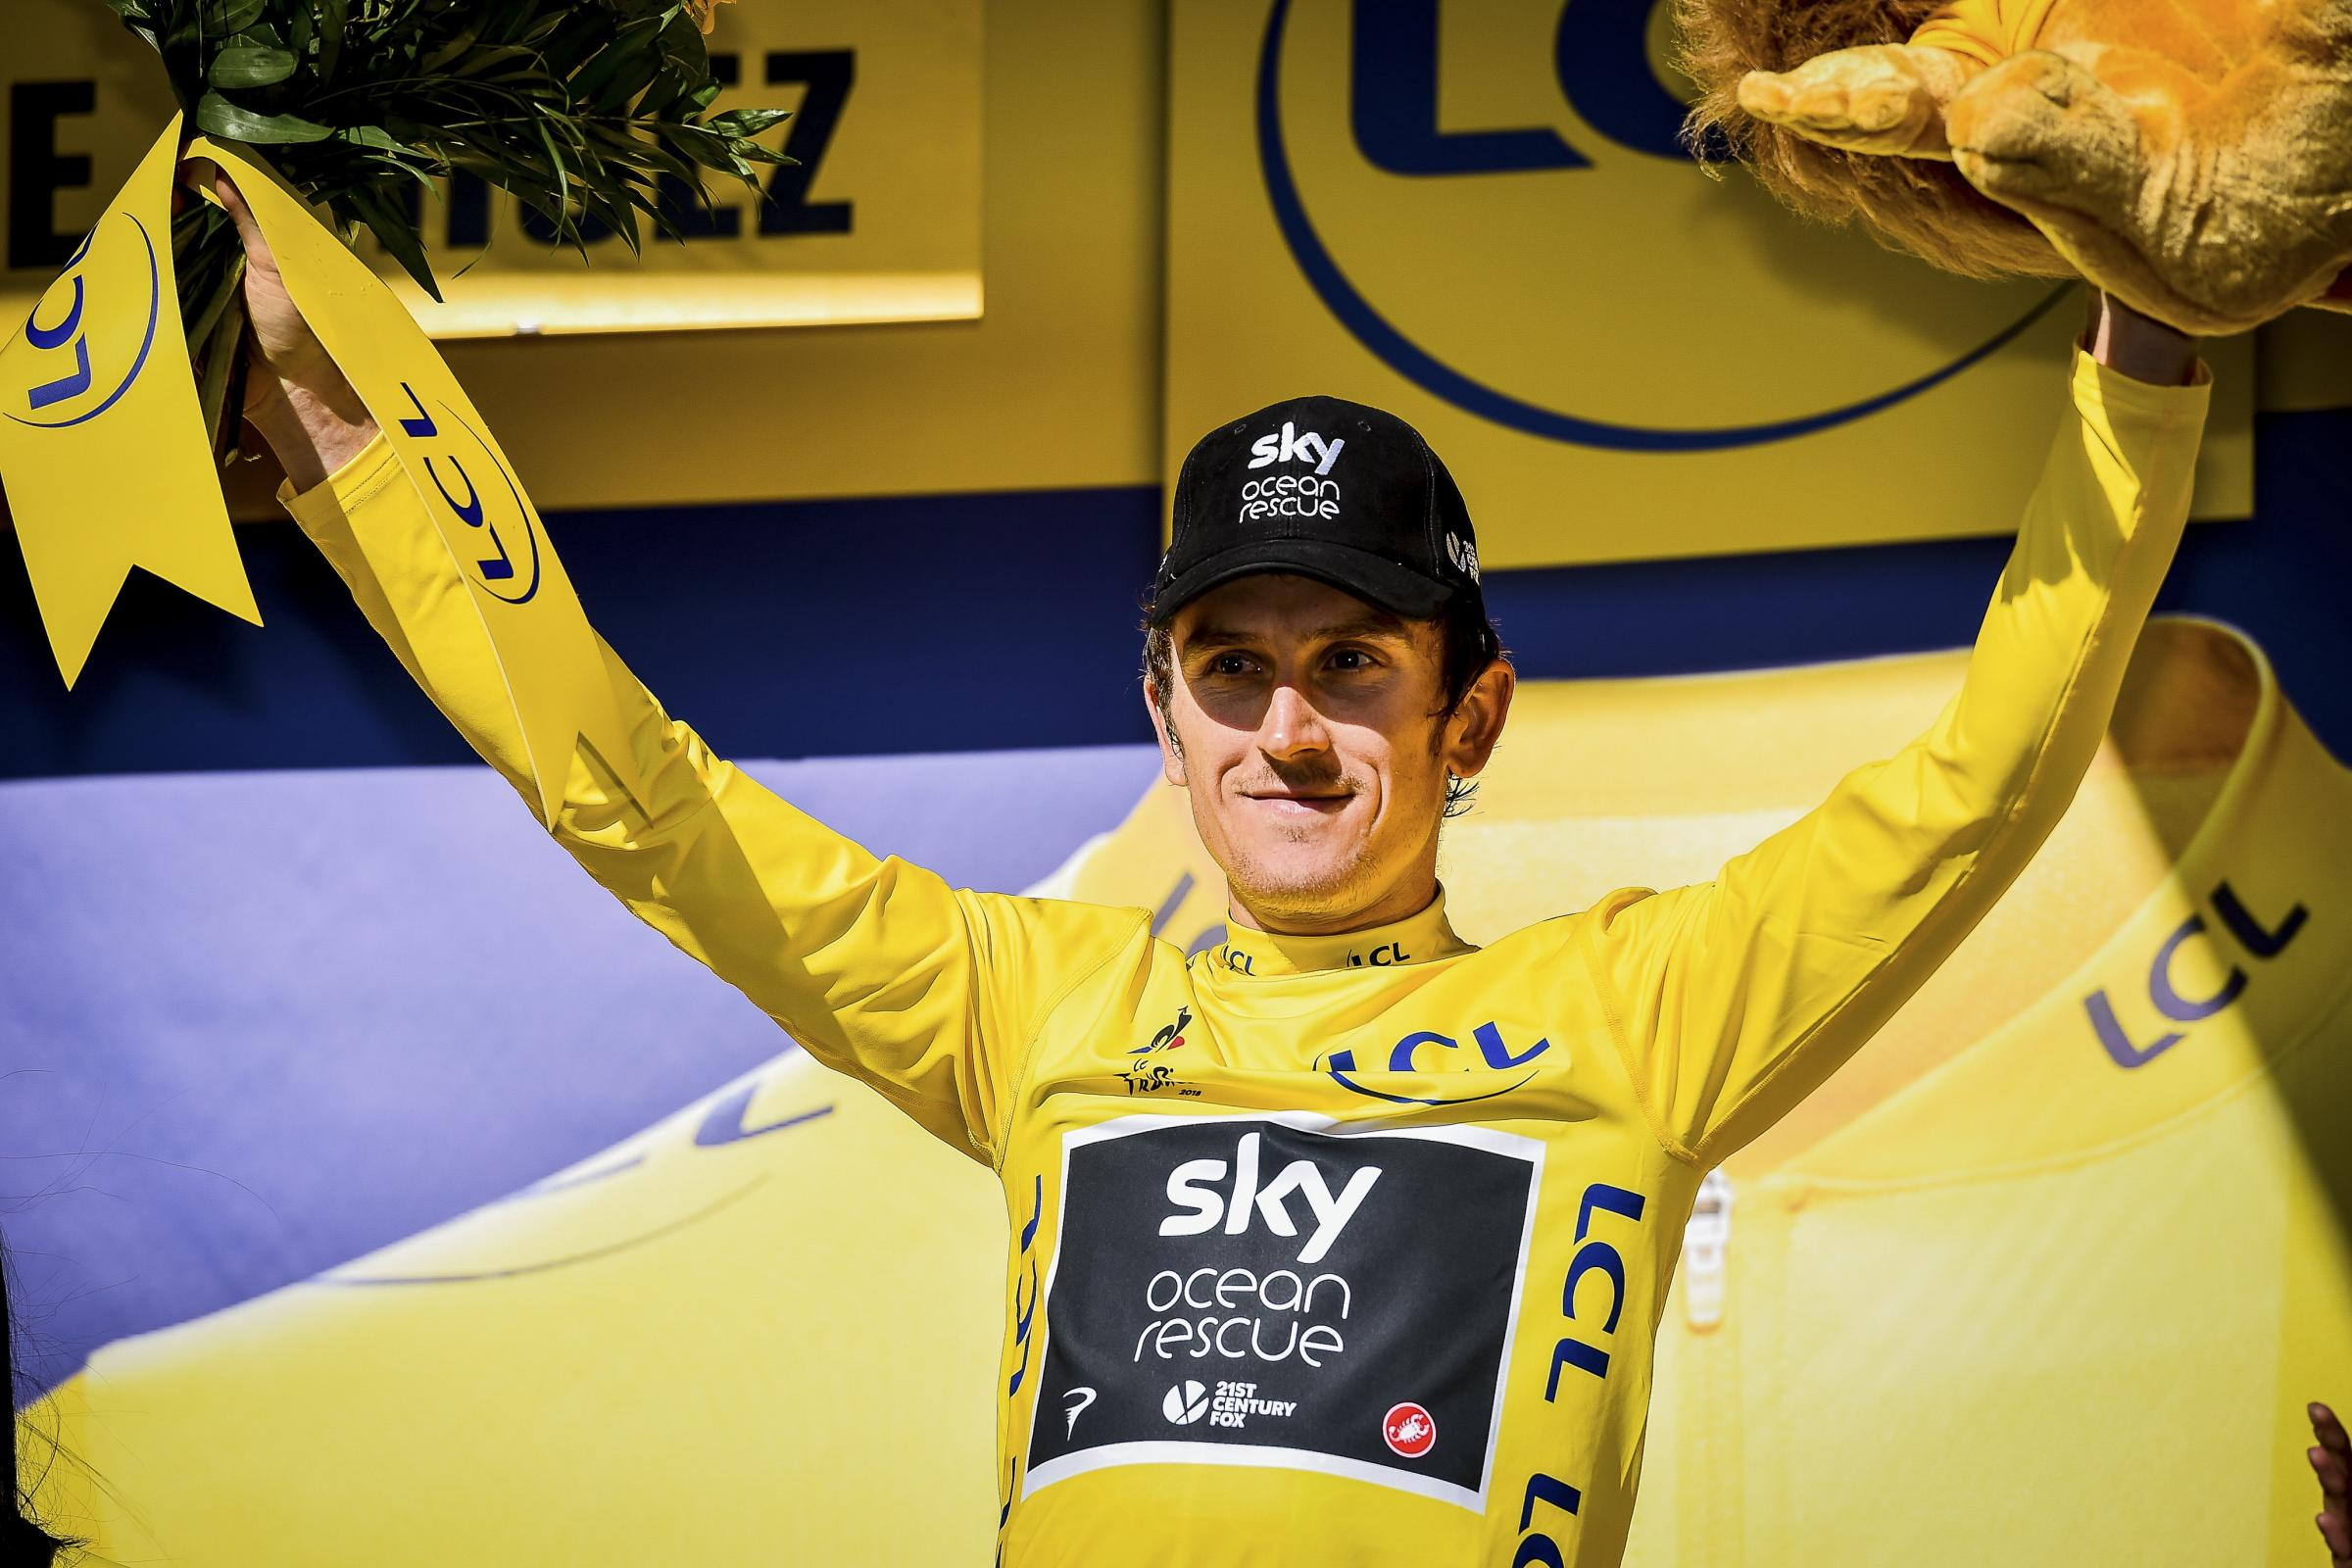 Ready to sacrifice title for Thomas: Froome